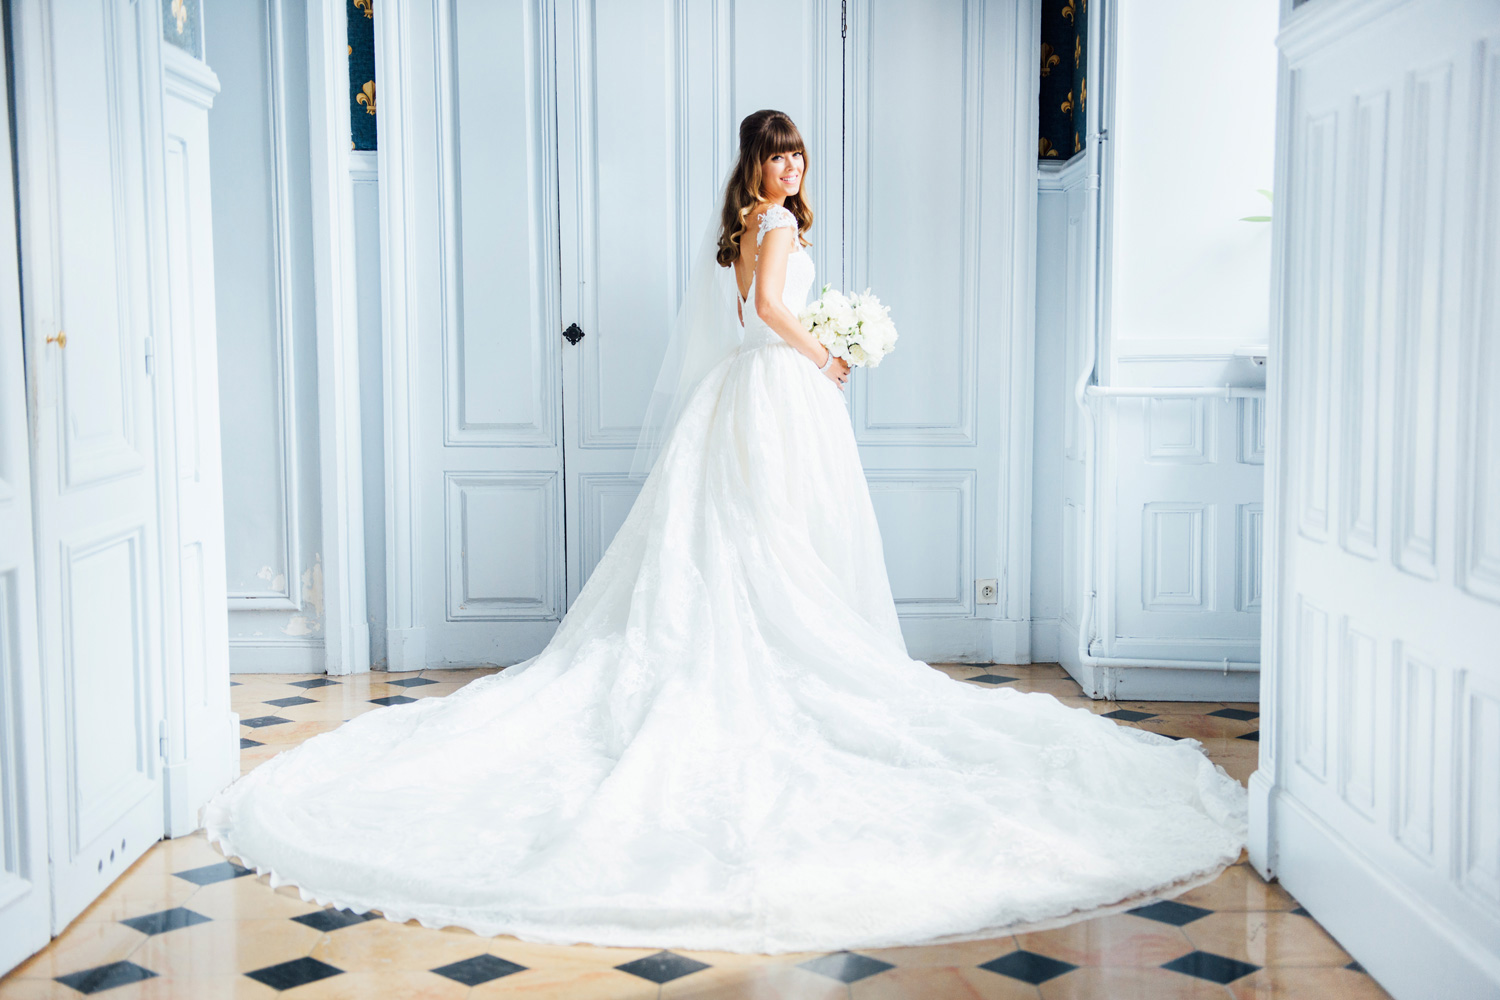 097-katie-mitchell-chateau-wedding-paris-france.jpg